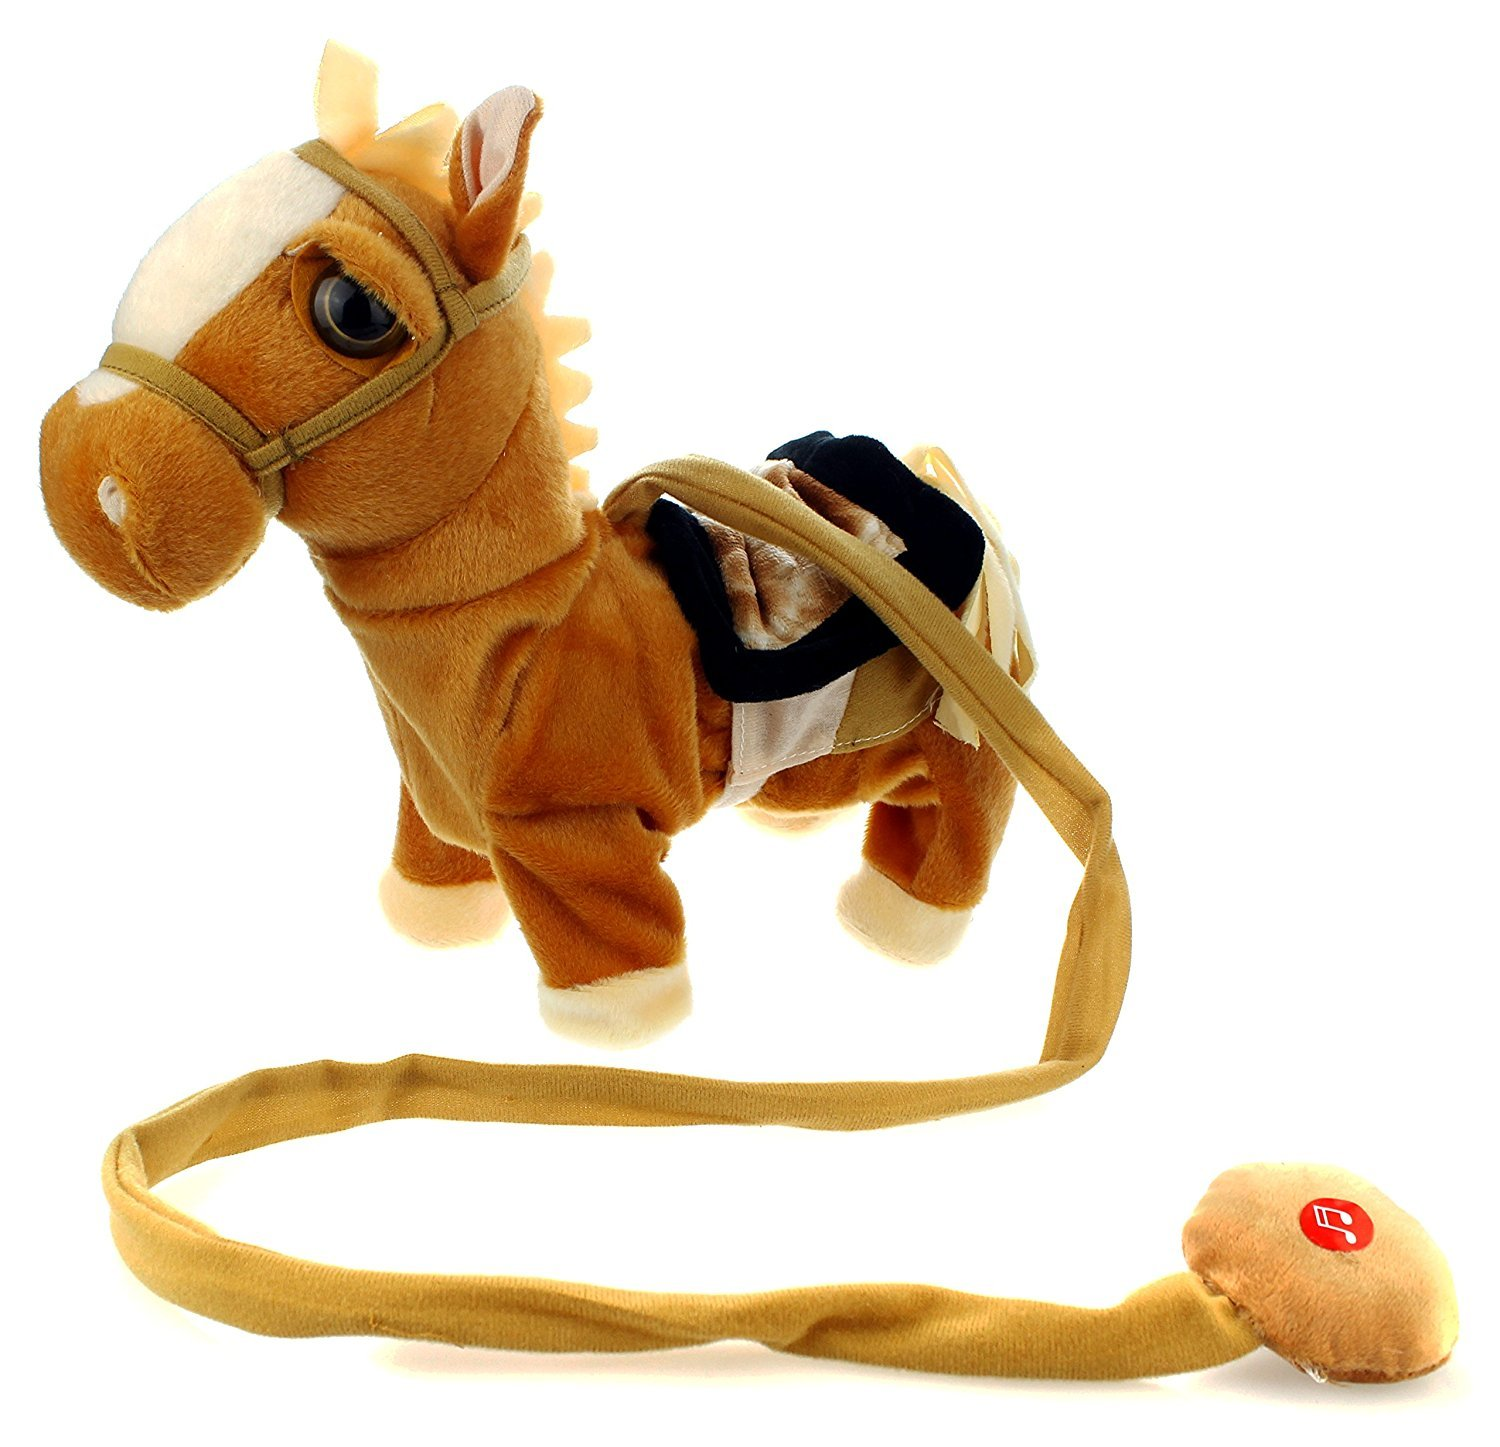 Cheap Giant Stuffed Pony Find Giant Stuffed Pony Deals On Line At